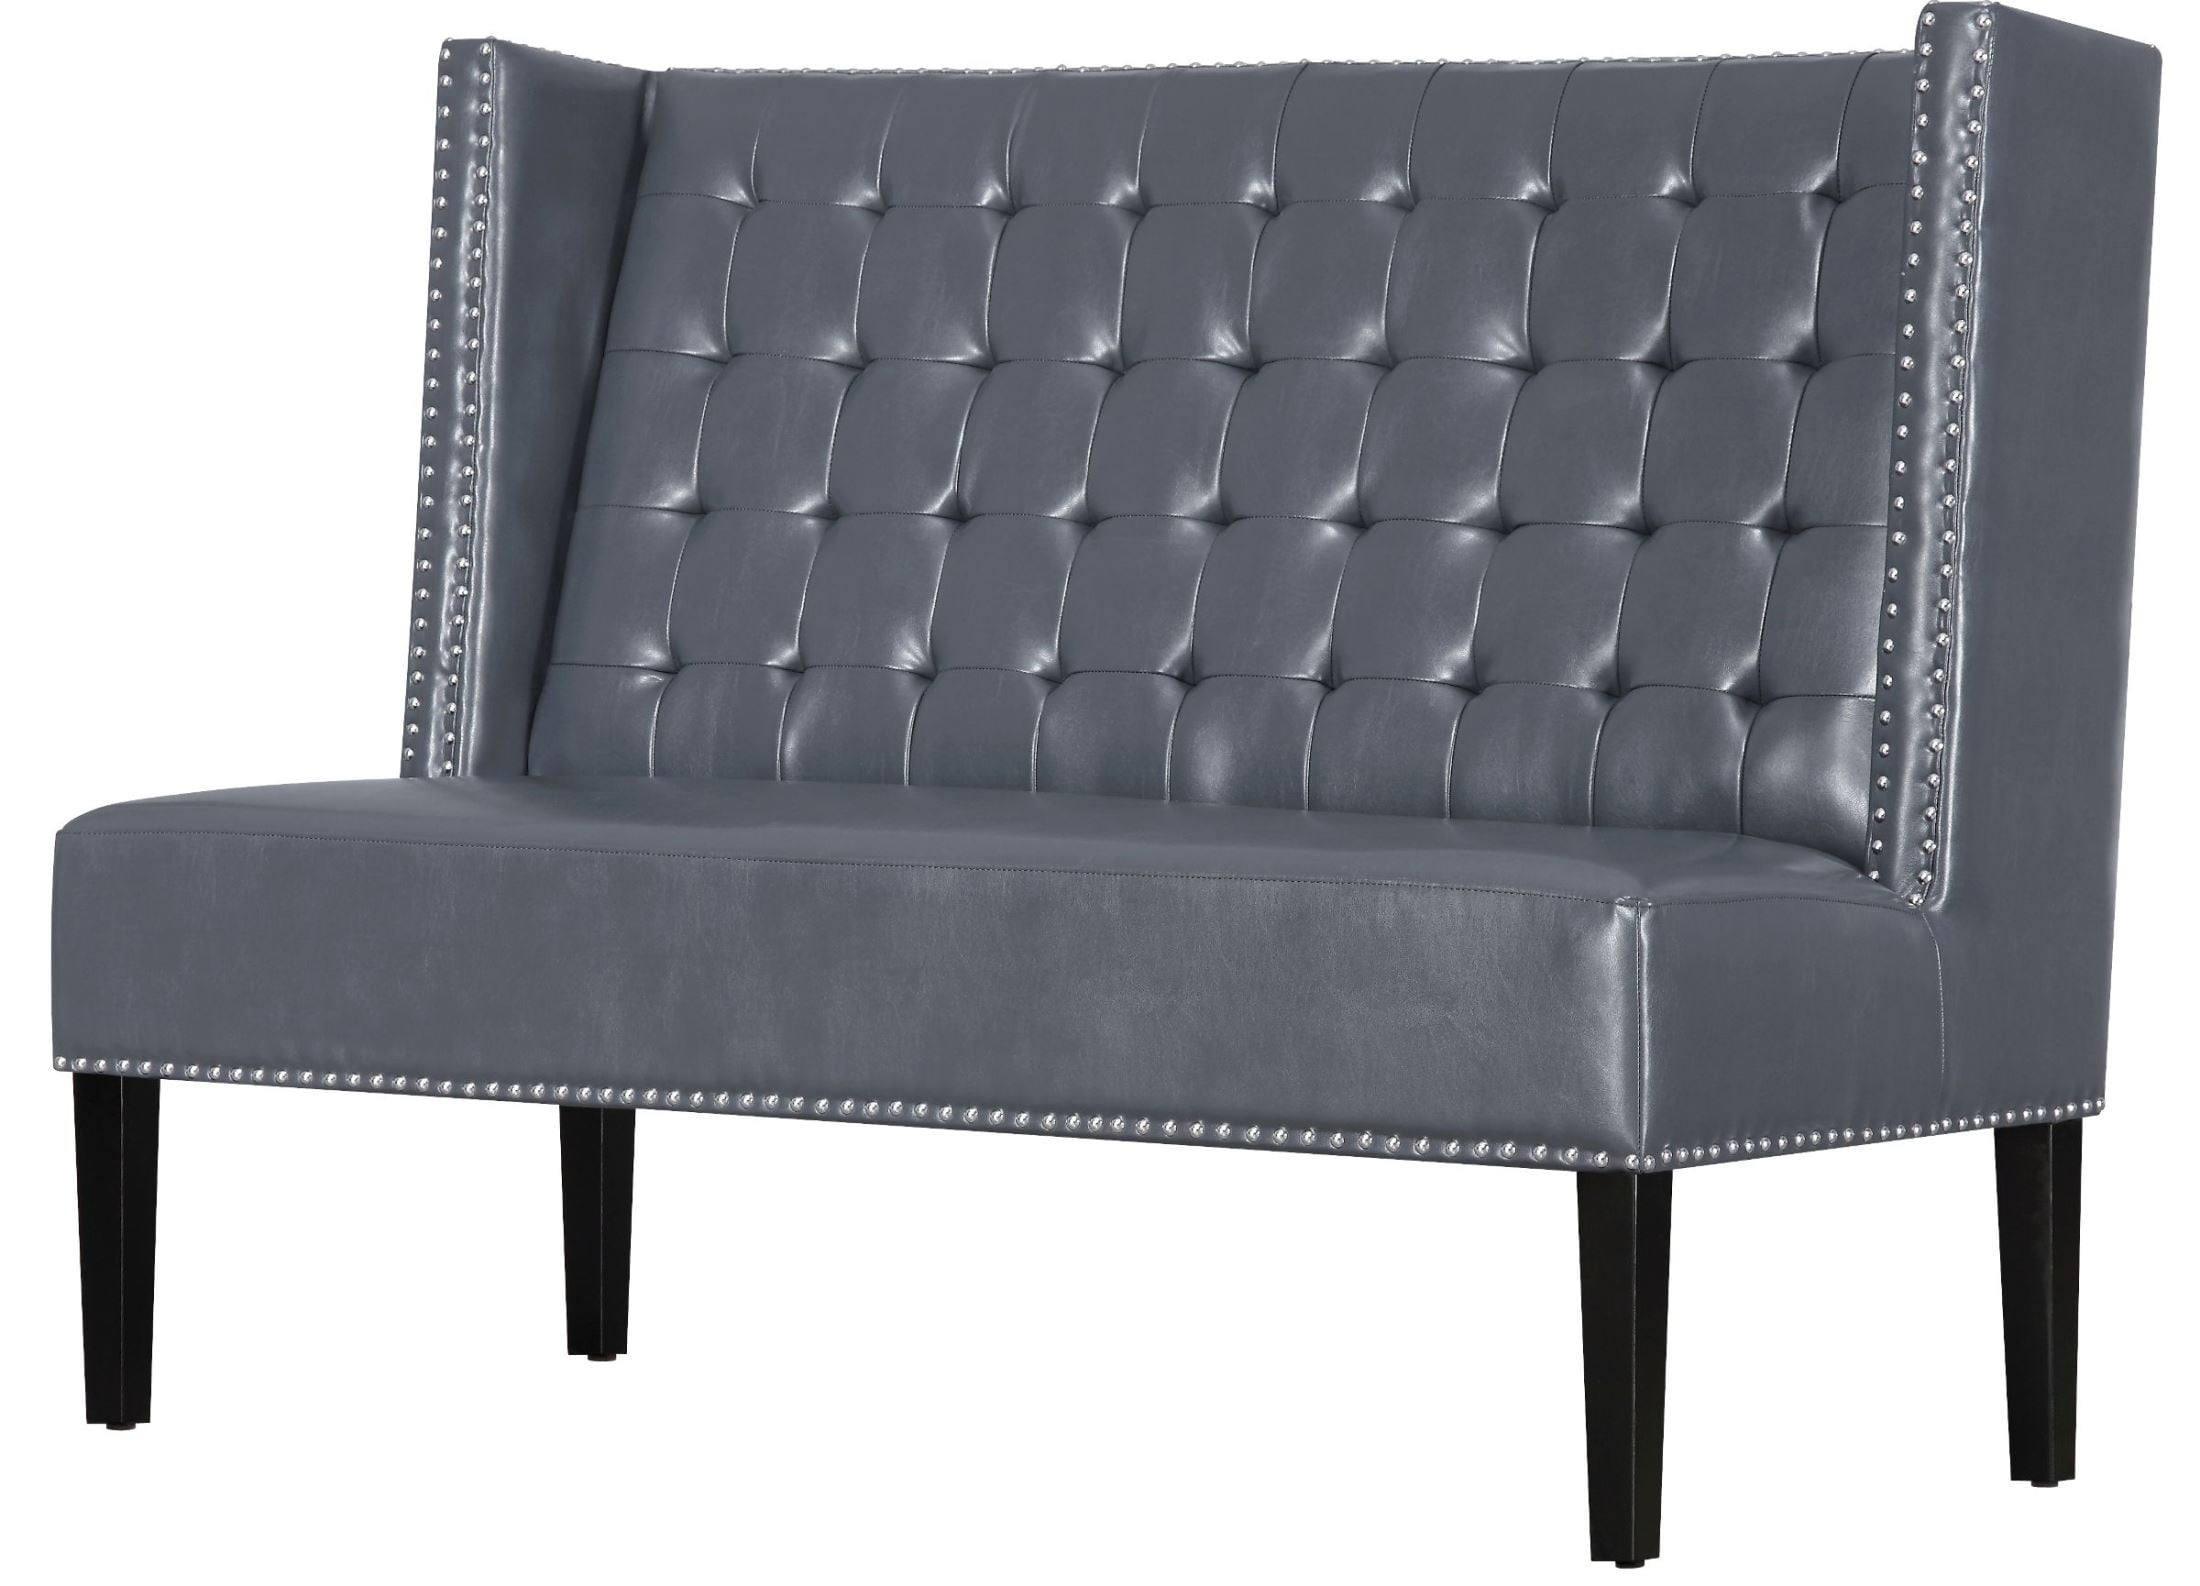 Halifax Gray Leather Banquette Bench From Tov 63116 Gray